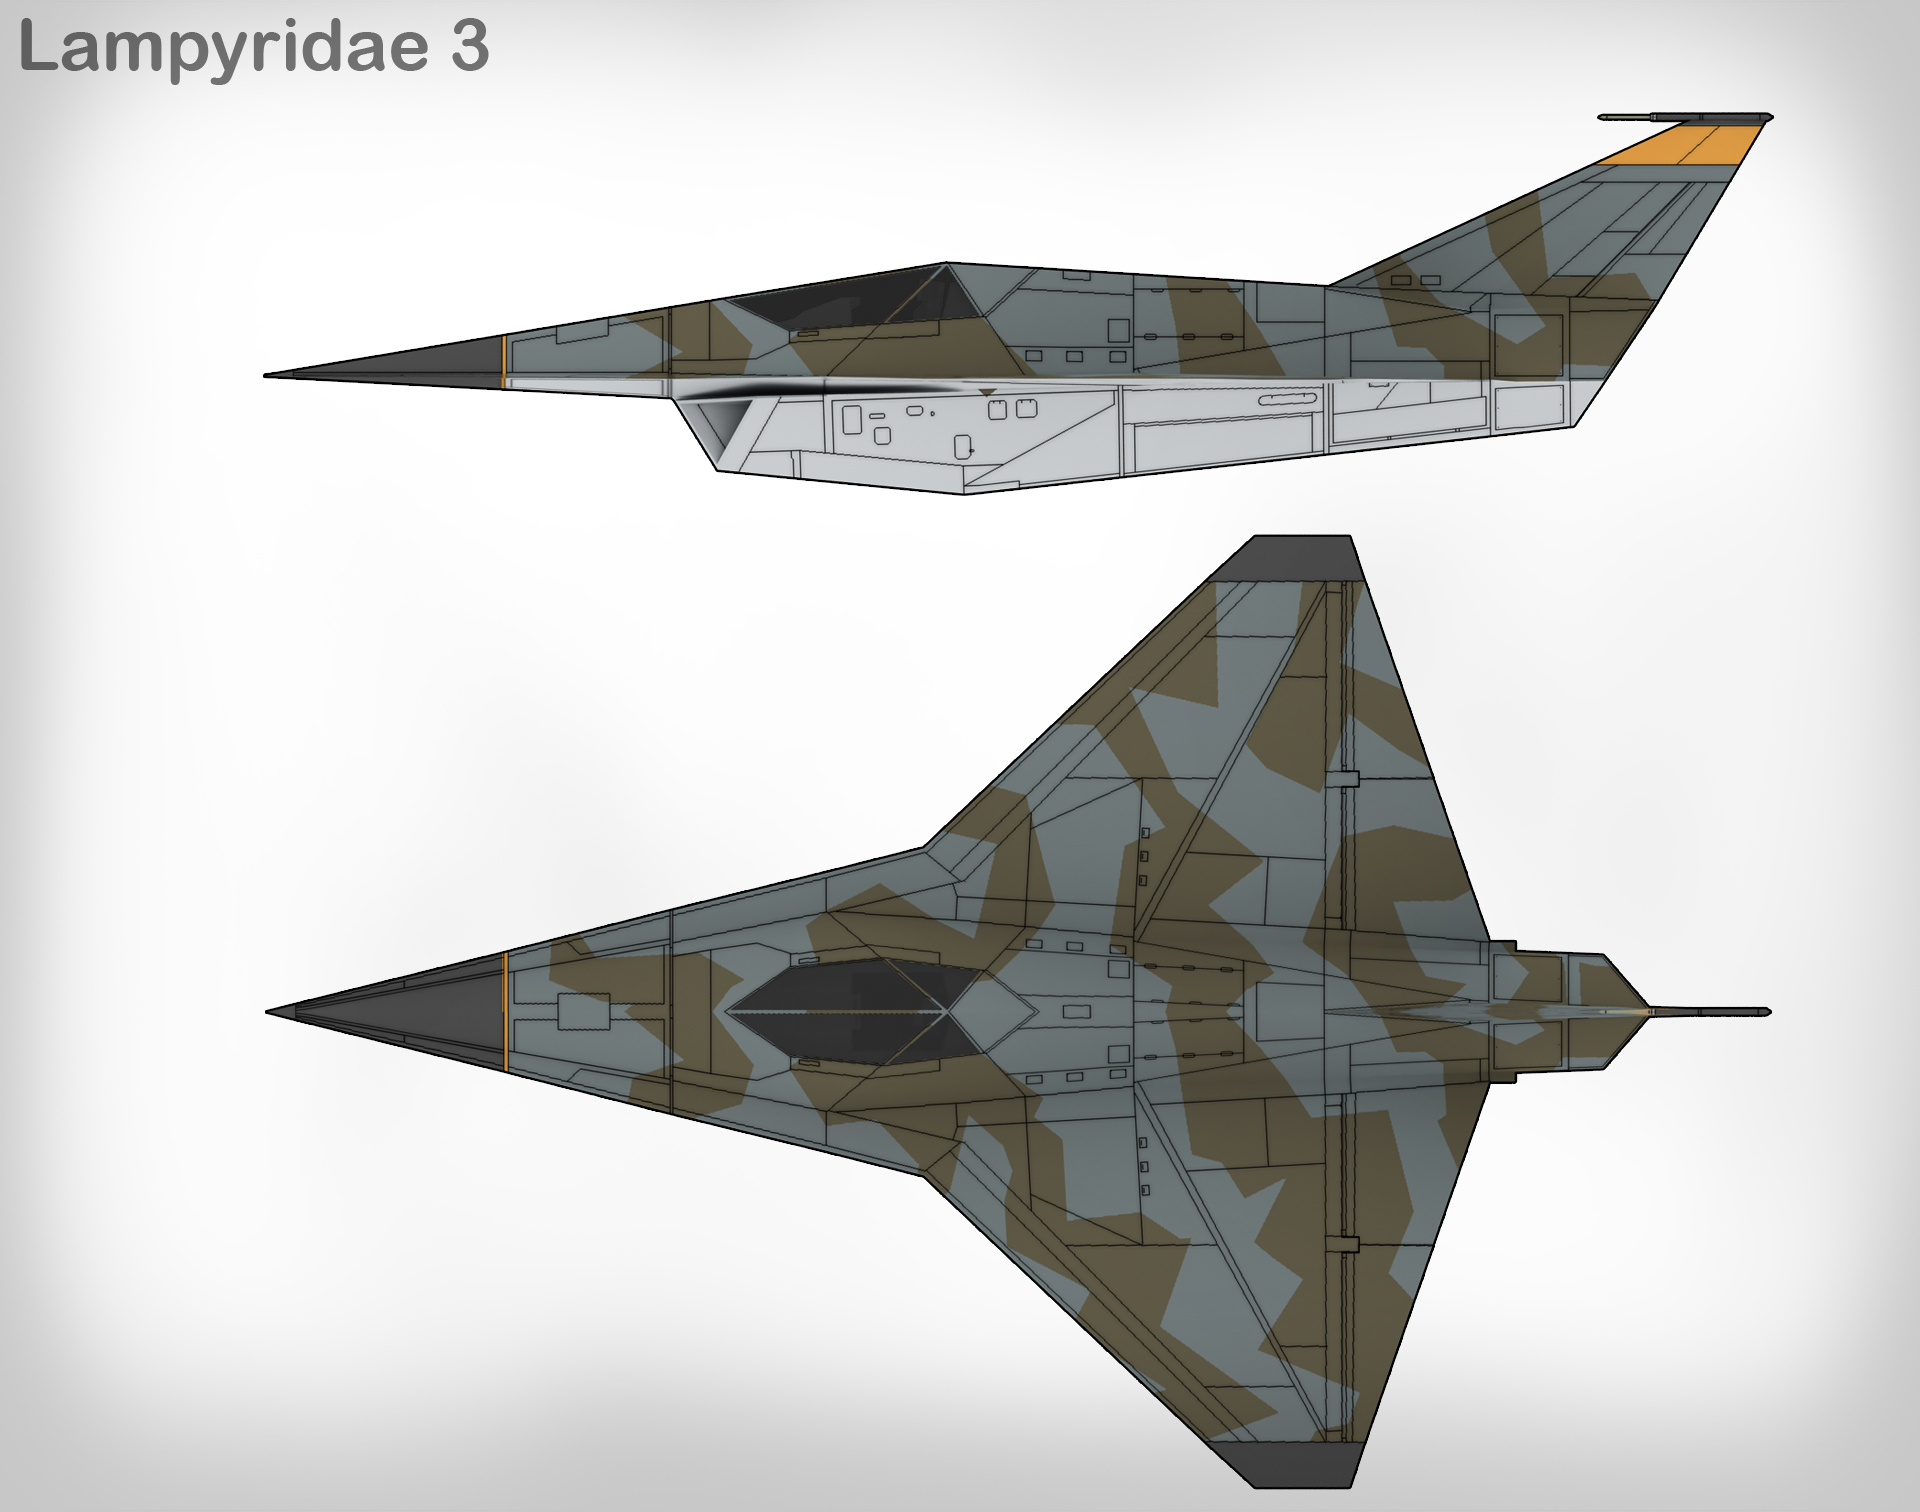 F 117 Stealth Fighter Game Report 038: Lampyridae...